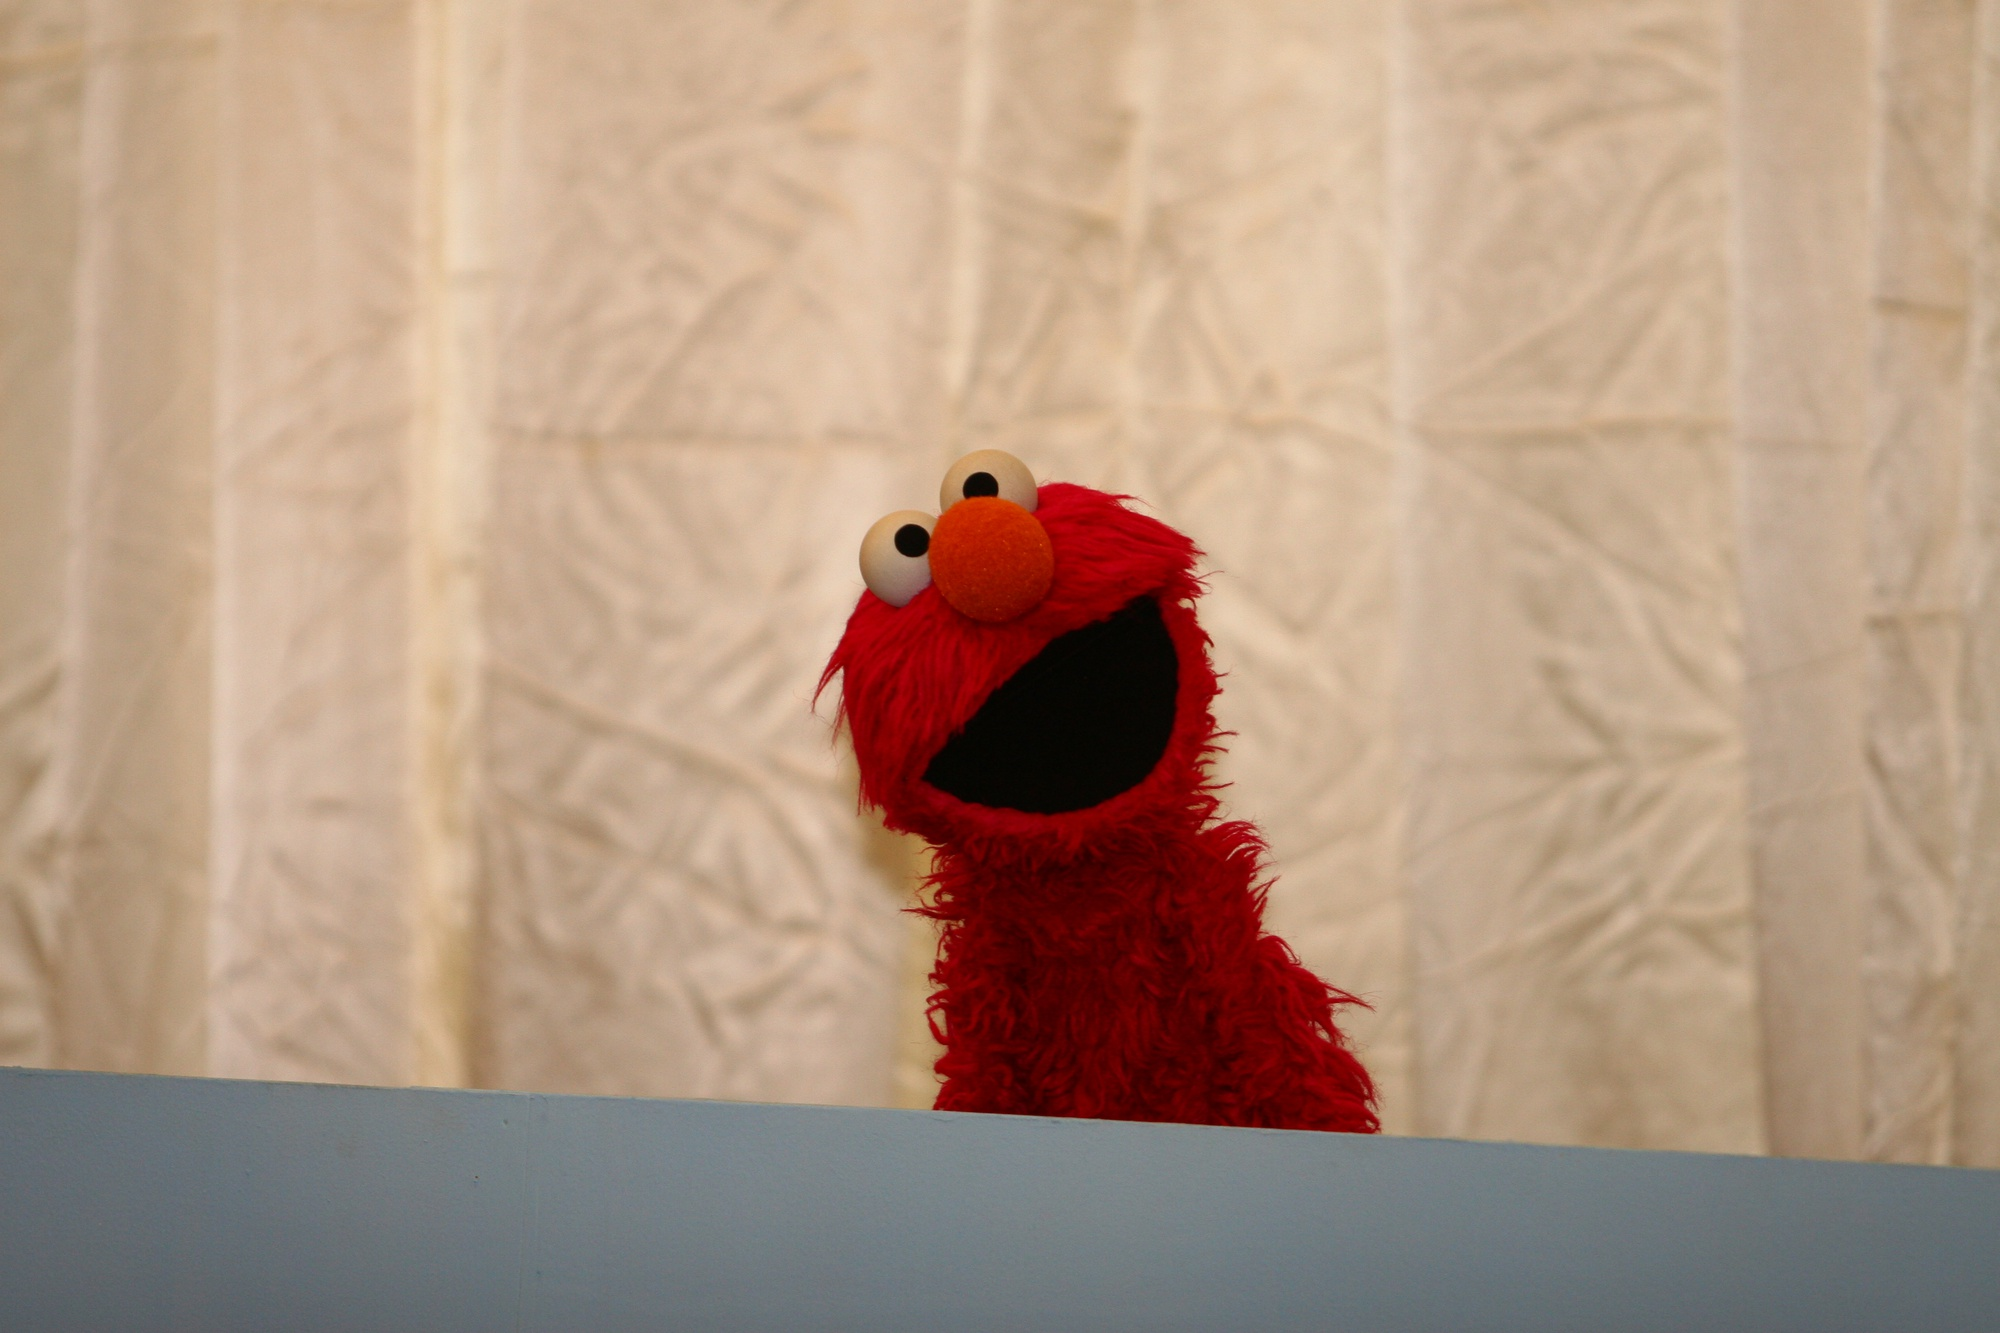 Sesame Street sought to level the playing field by repeatedly exposing children to new words and concepts through catchy songs.